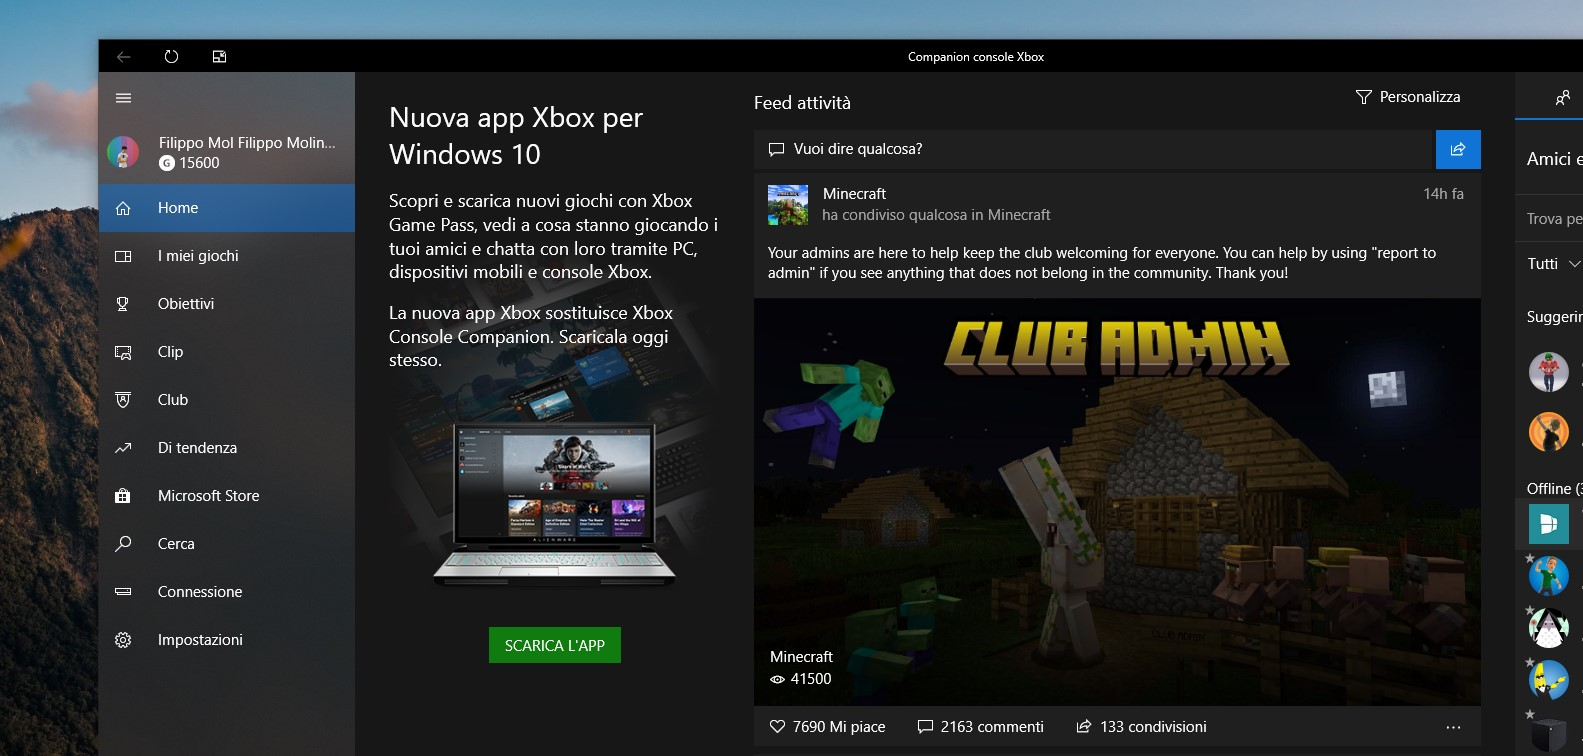 Companion console Xbox banner per il download della nuova app Xbox per Windows 10